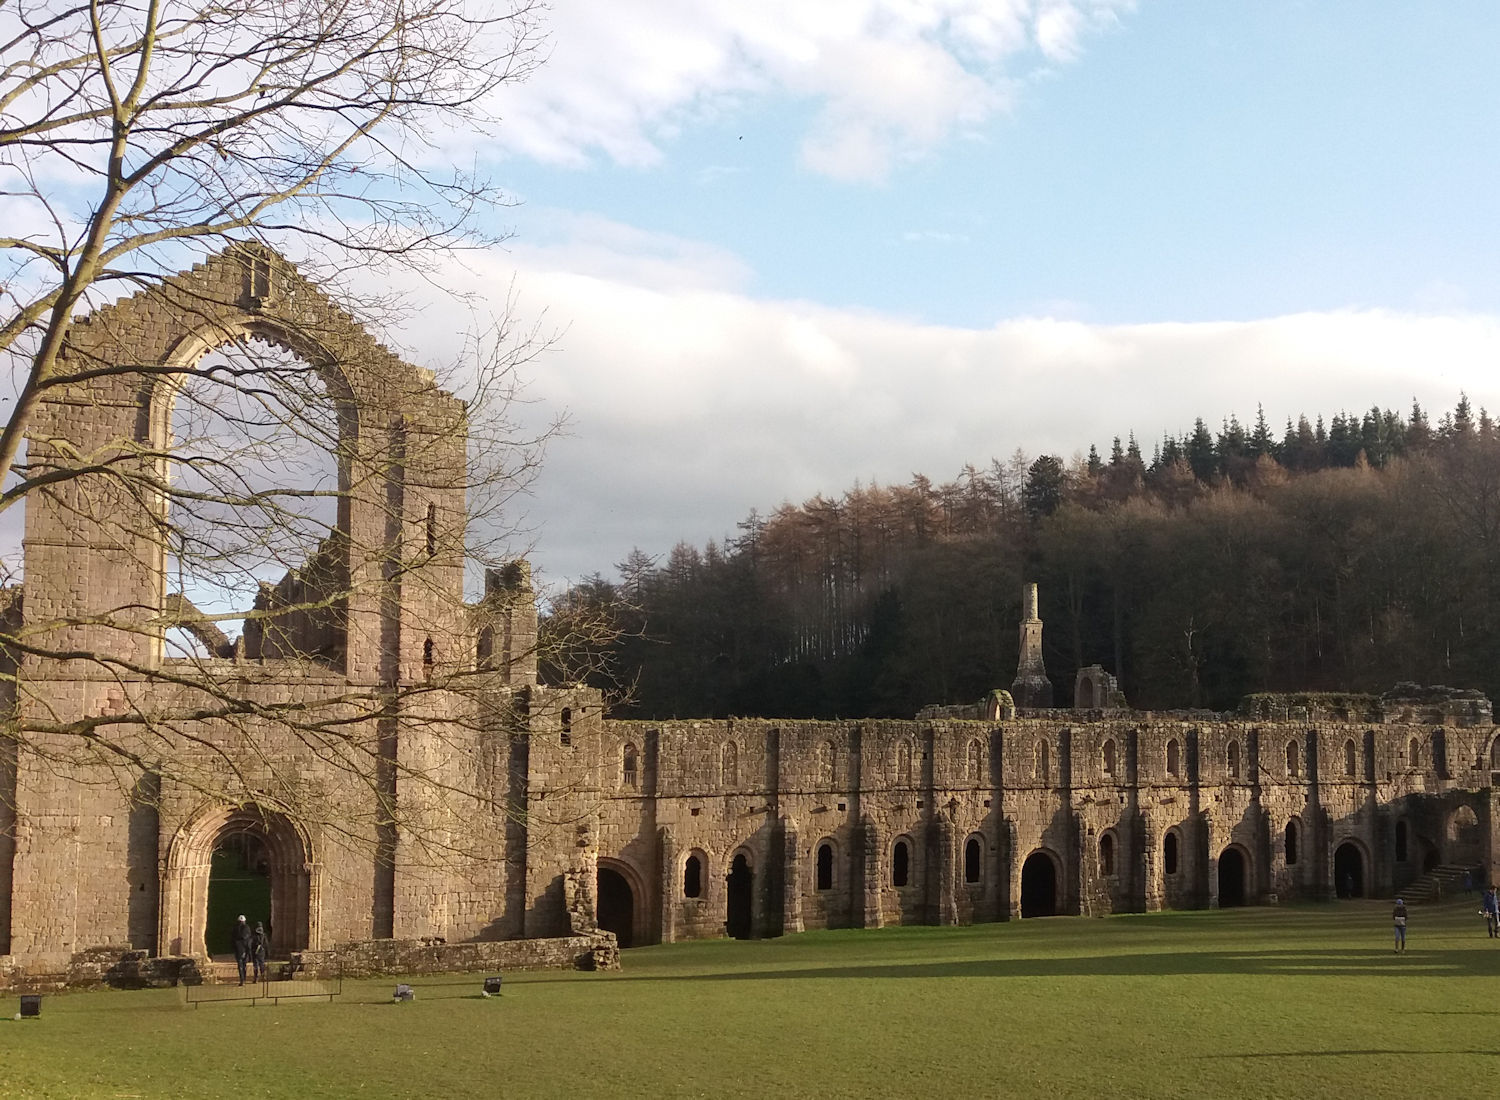 Fountains Abbey cloisters from outside.